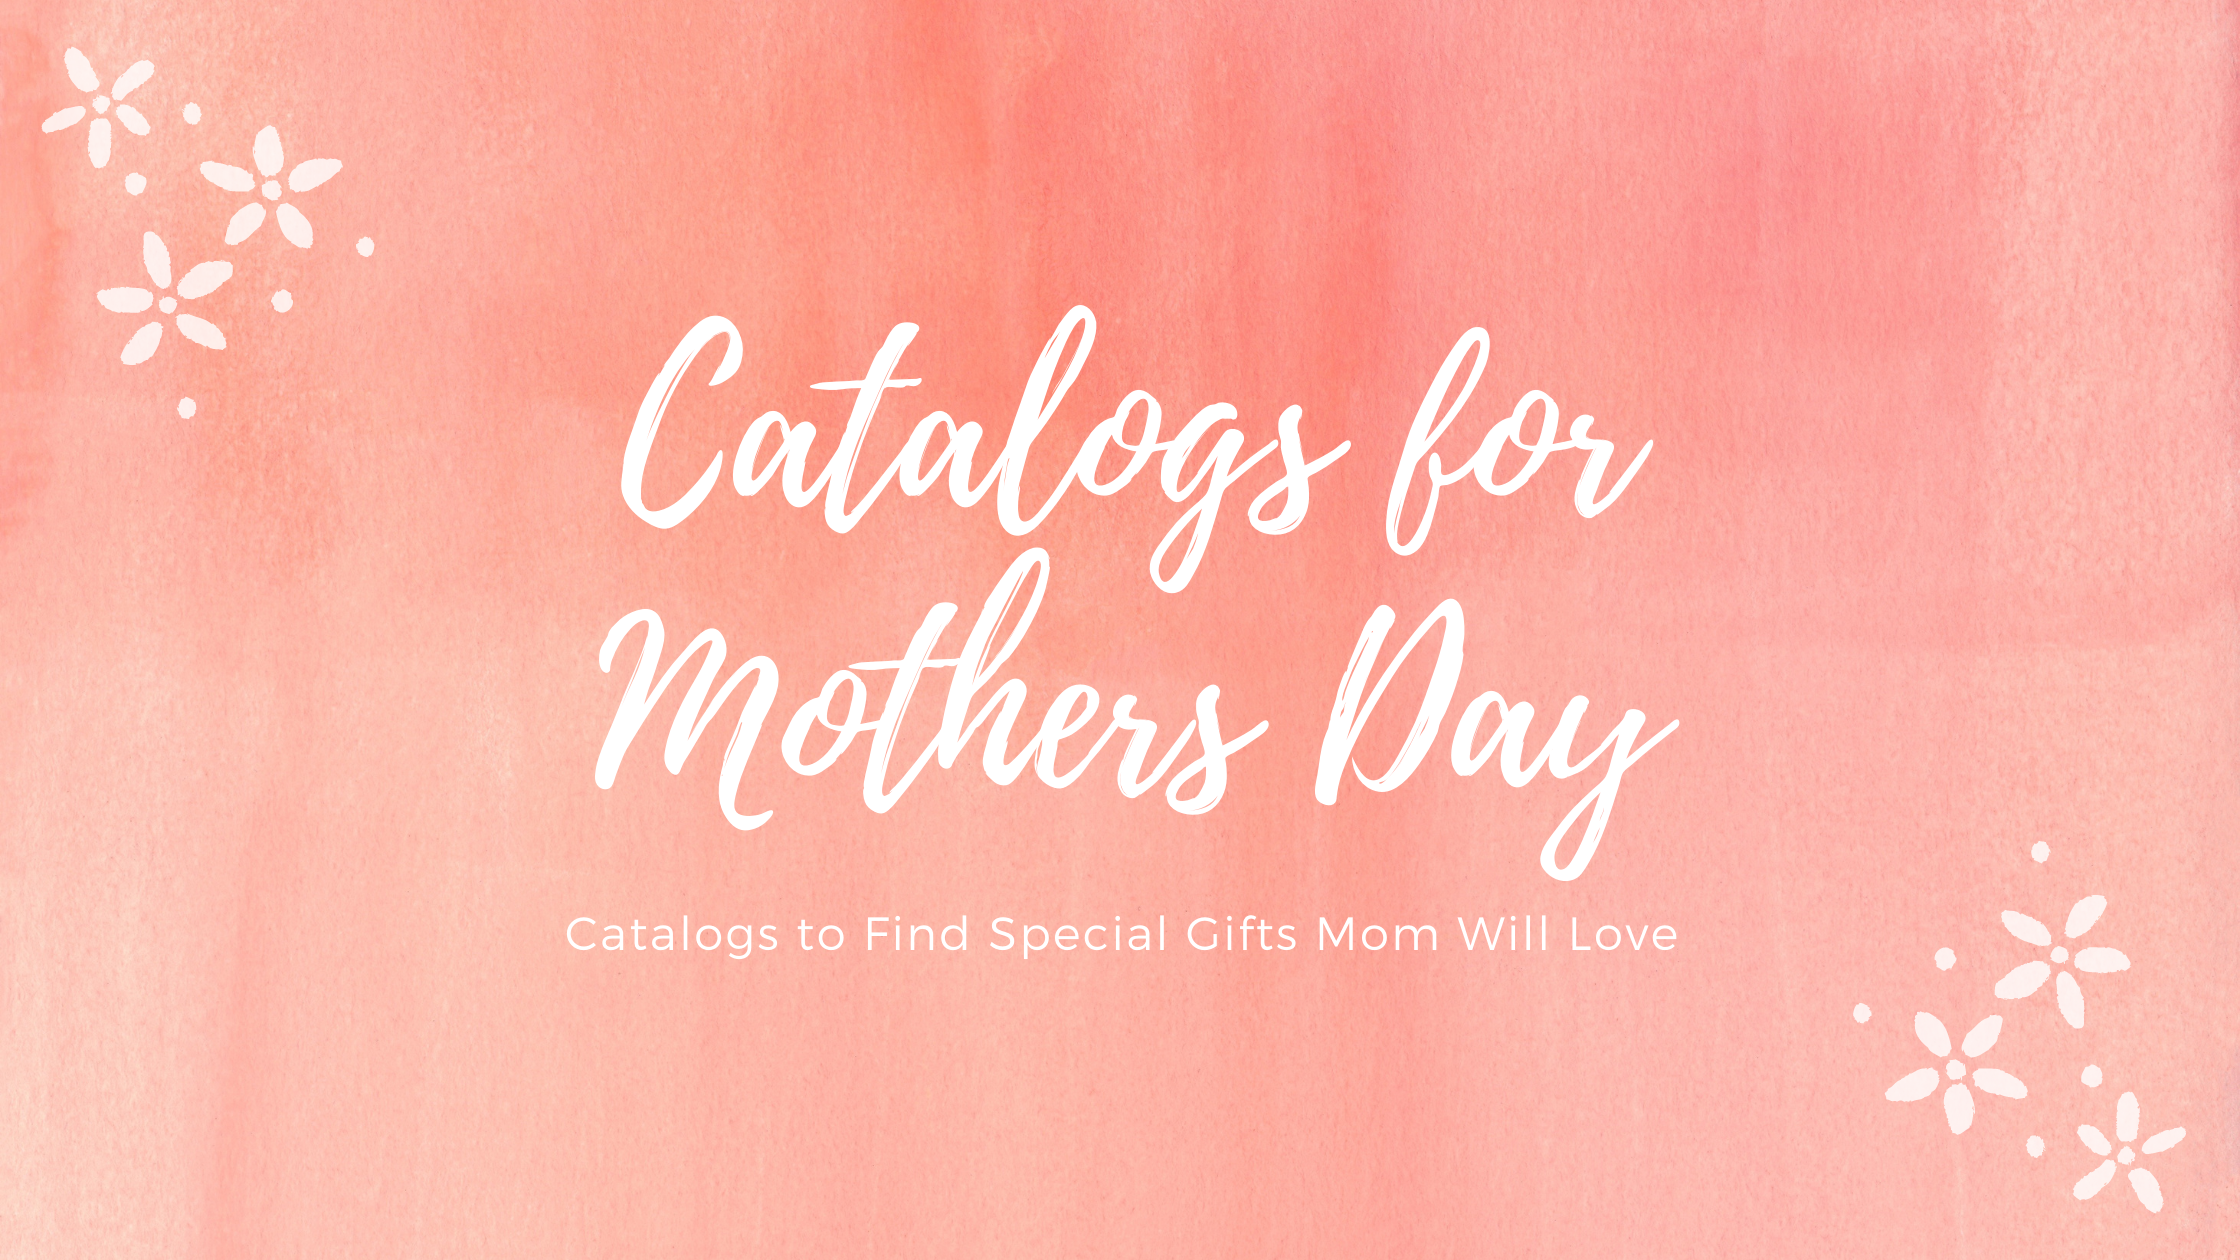 10 Mothers Day Gift Catalogs: Find Unusual and Special Gifts Mom Will Love at Catalogs.com